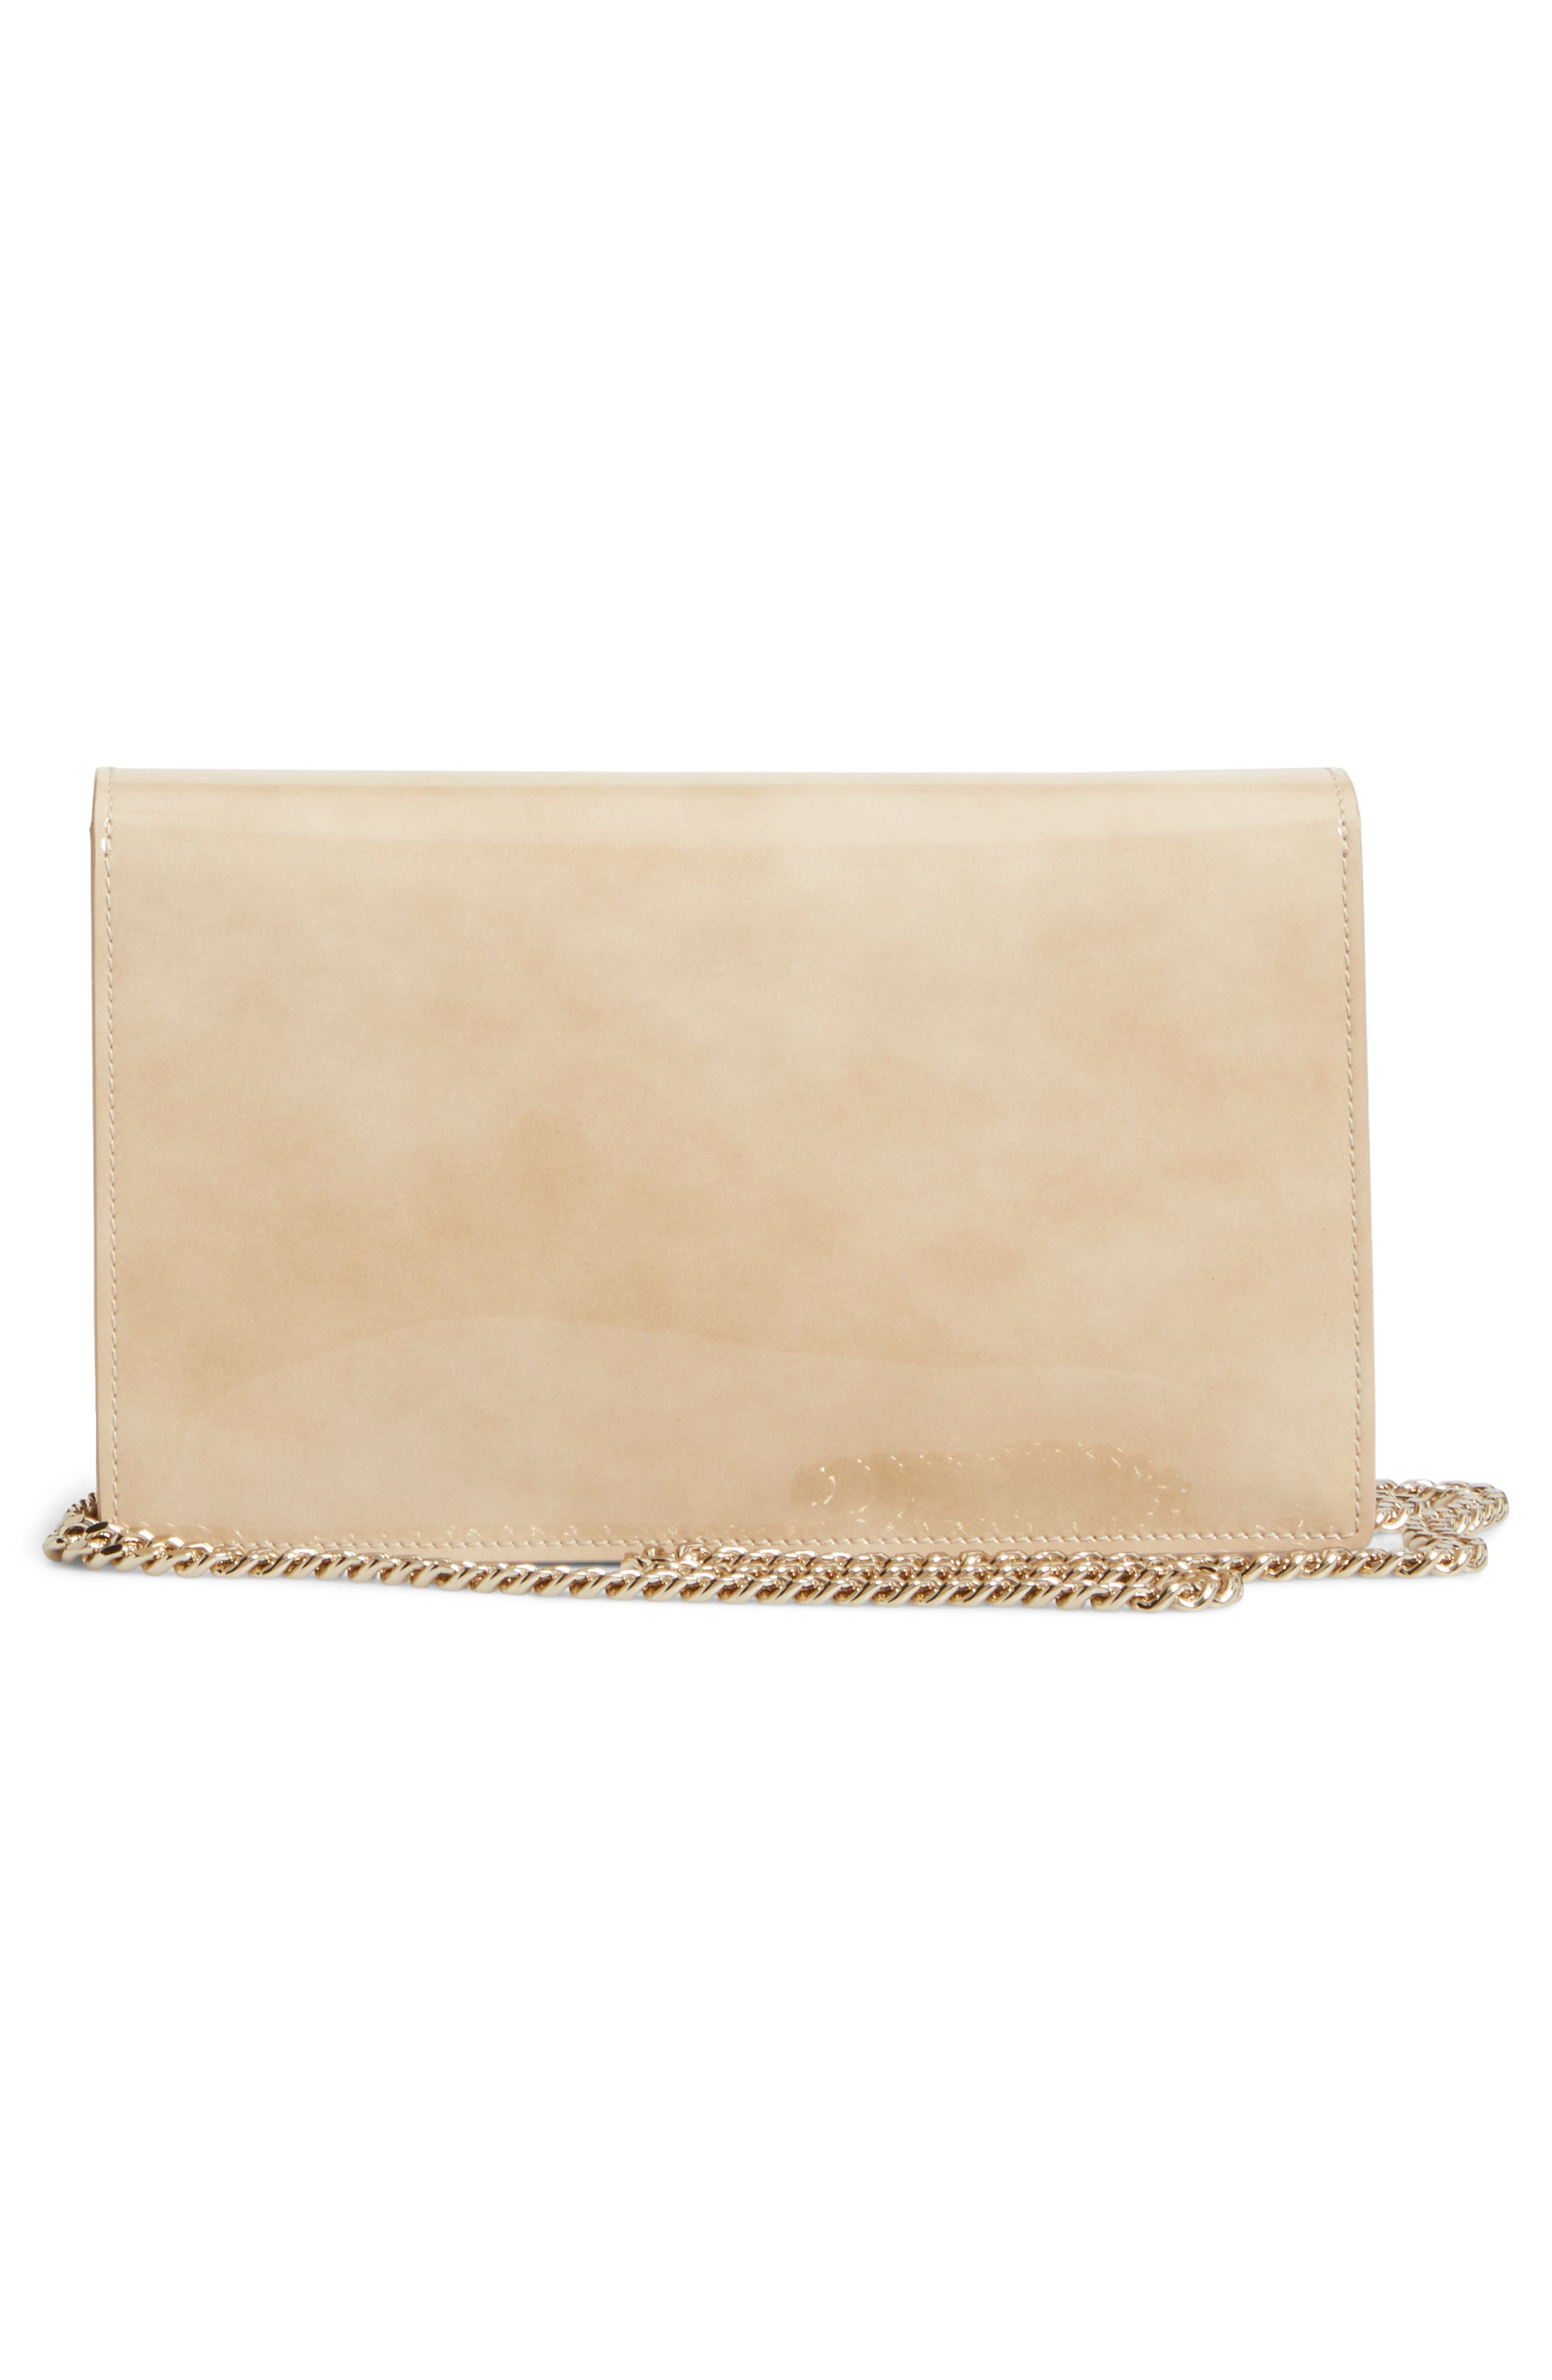 Florence Patent Leather & Suede Clutch,                             Alternate thumbnail 3, color,                             NUDE